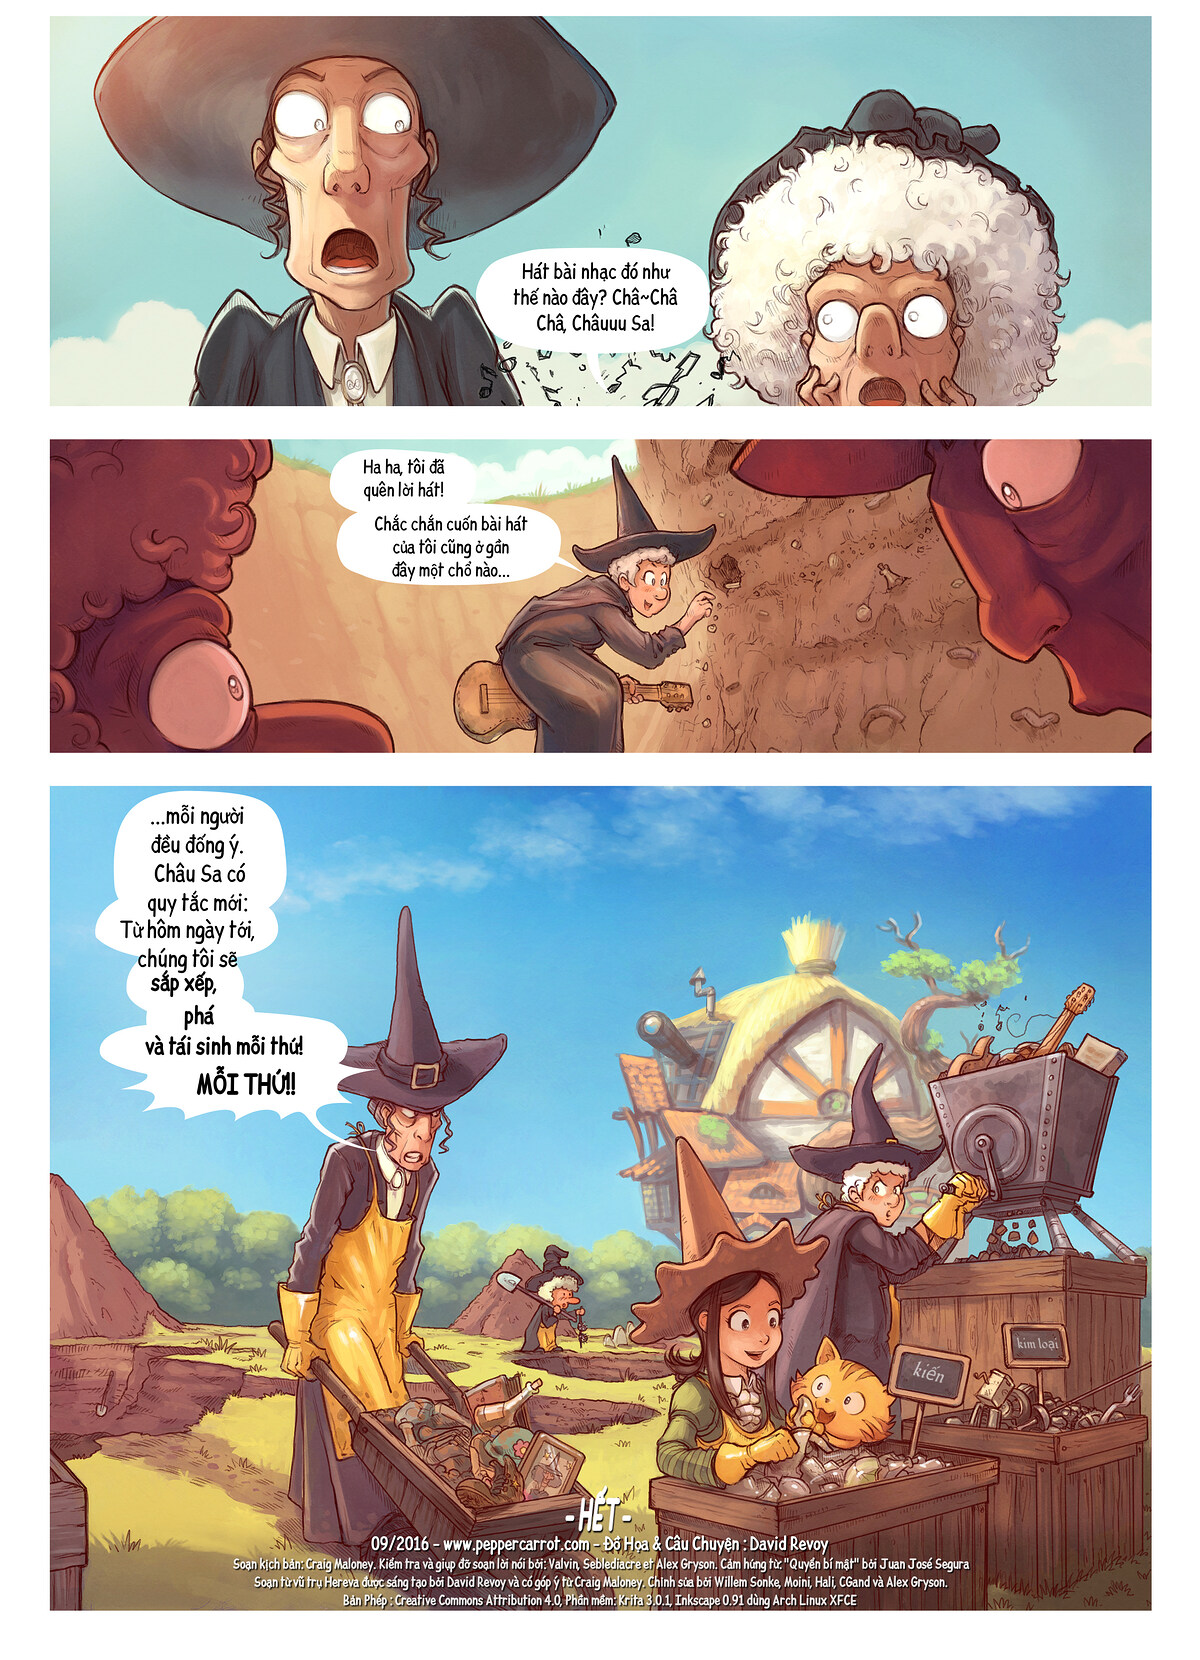 A webcomic page of Pepper&Carrot, Tập 19 [vi], trang 7